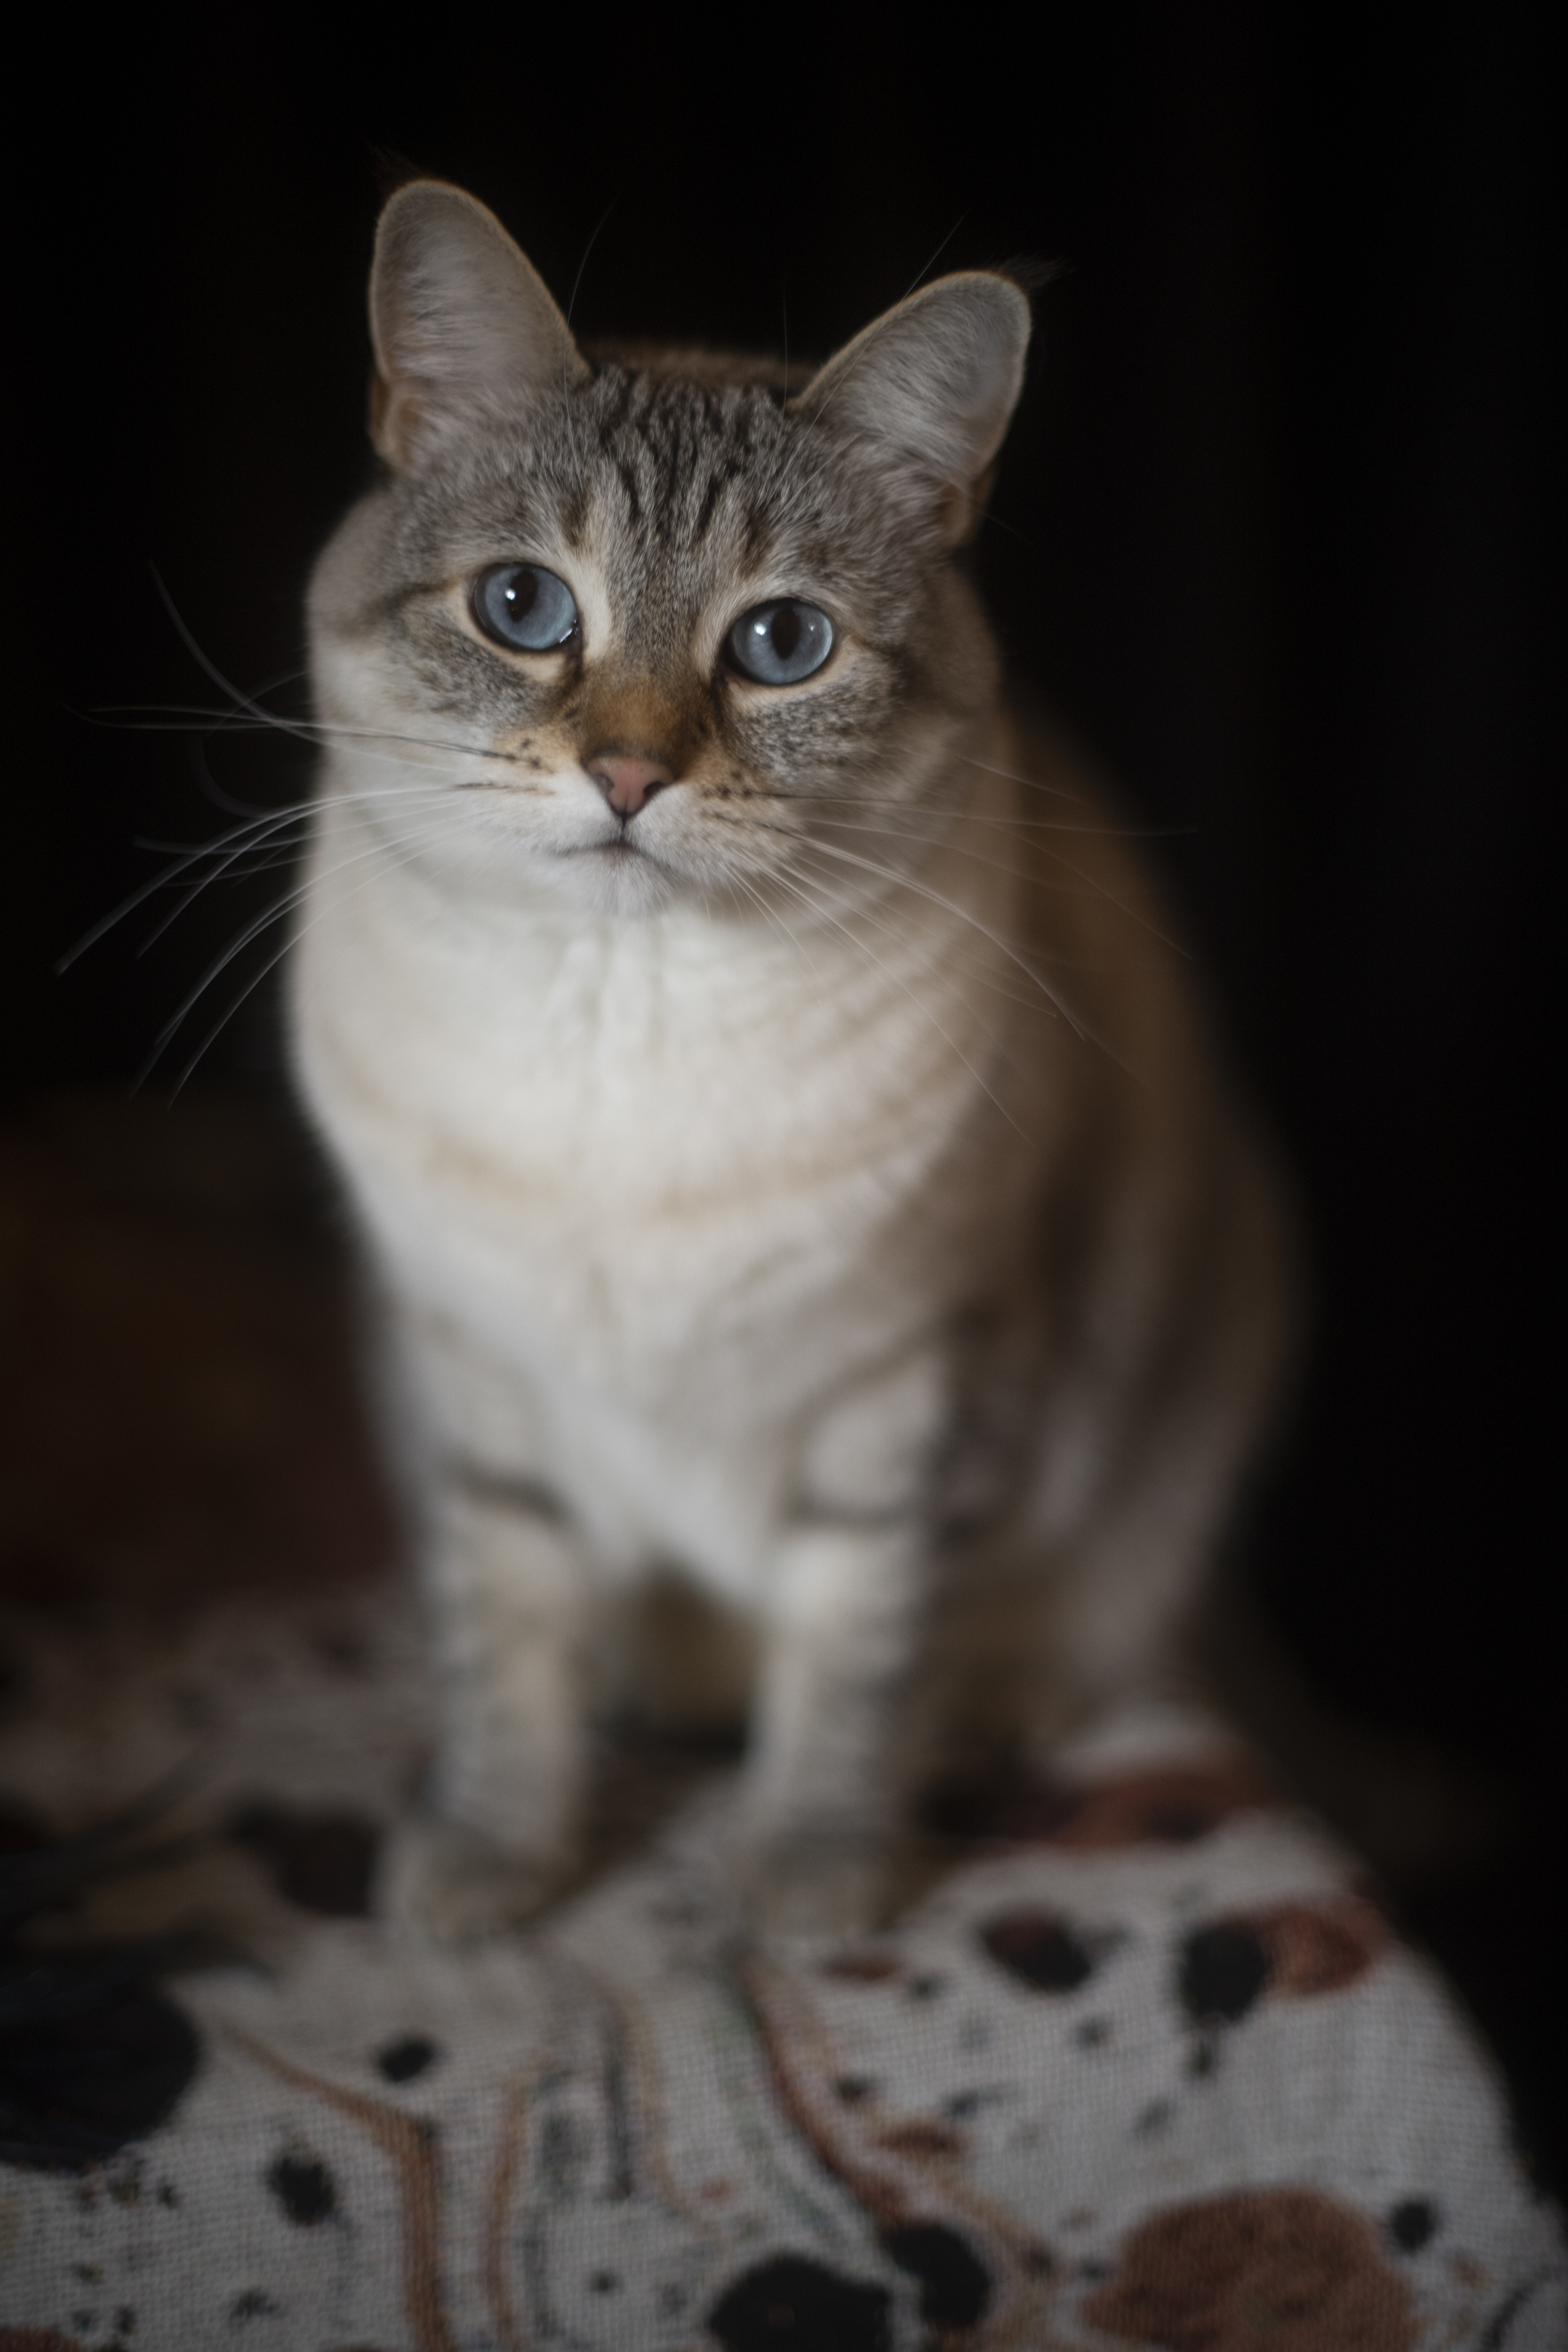 This is my kitty Sybil :)